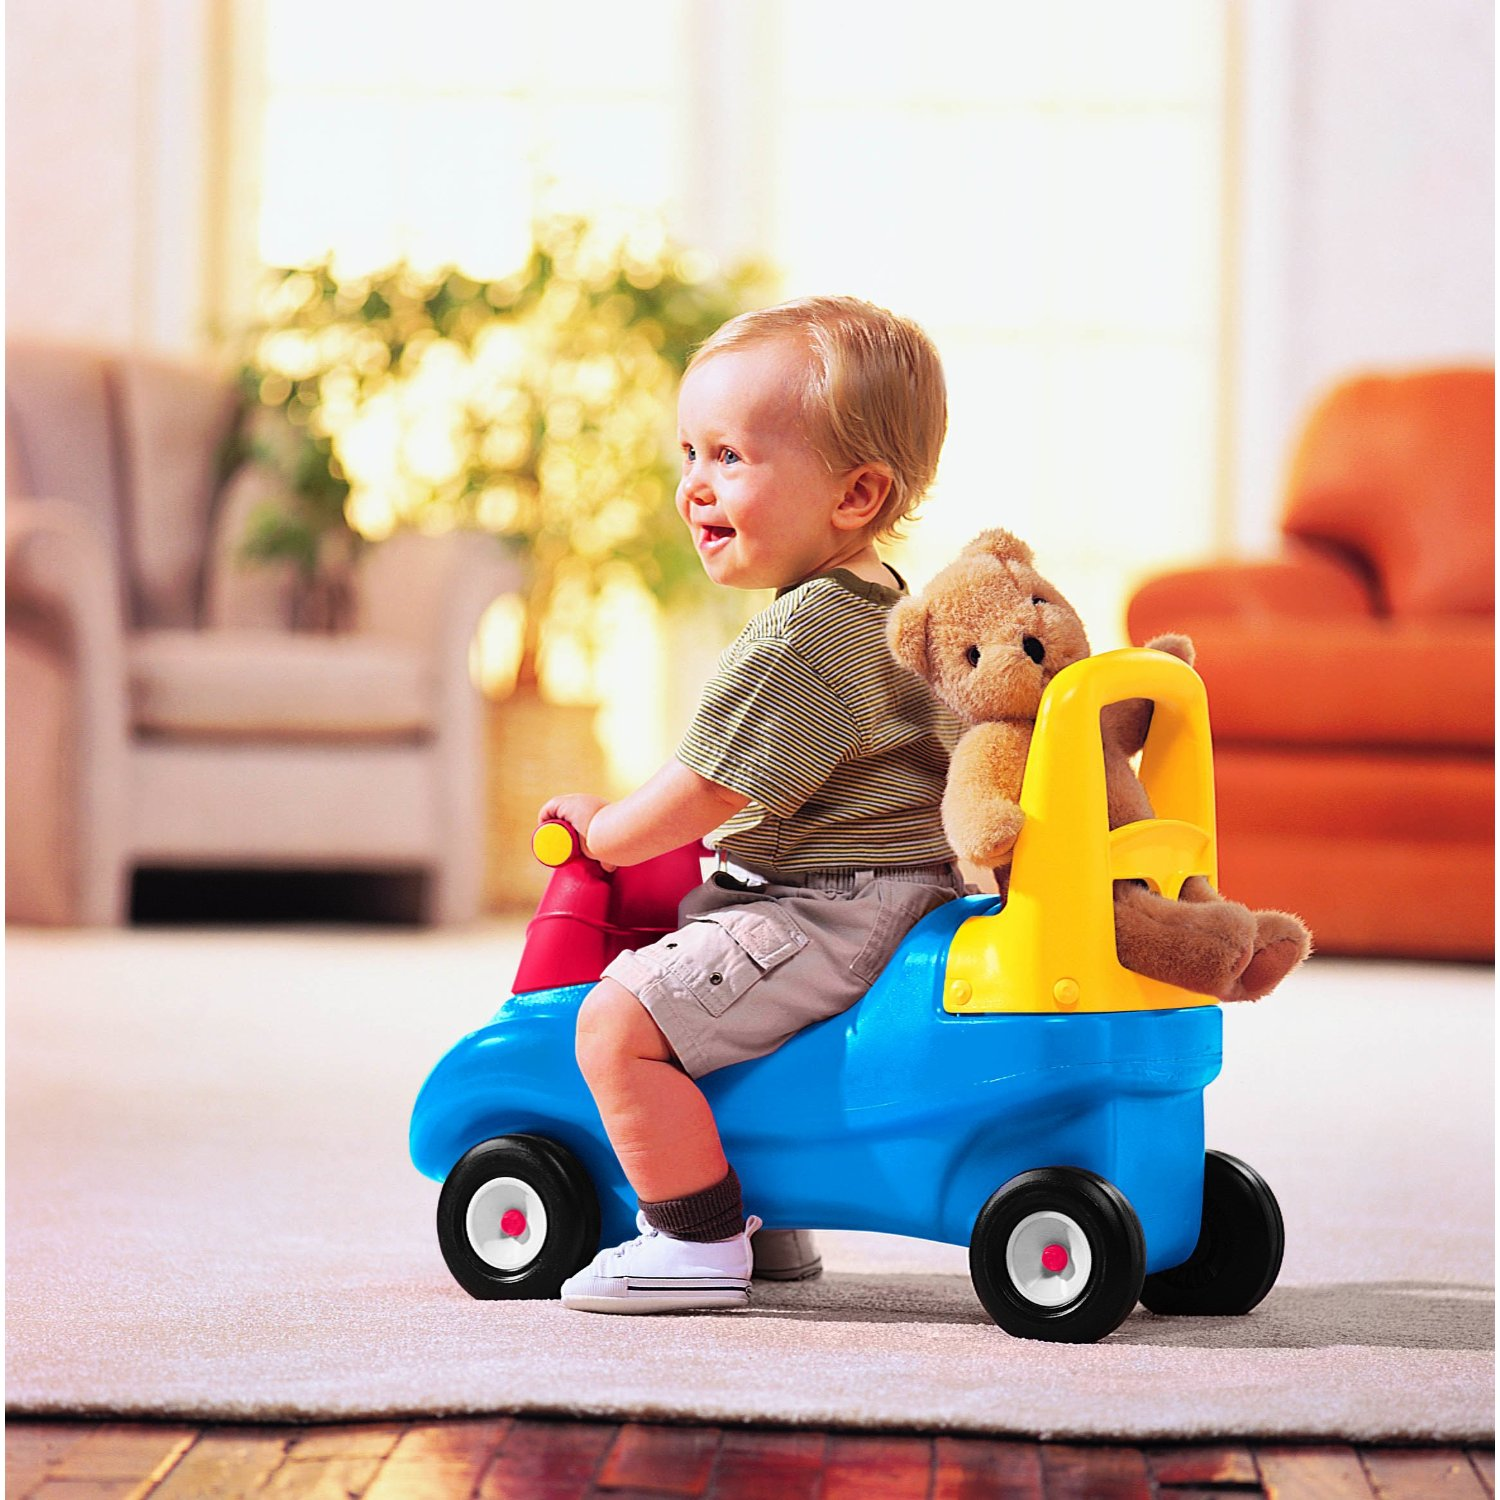 Used Toys For Toddlers : Gift ideas for one year olds yougotagift